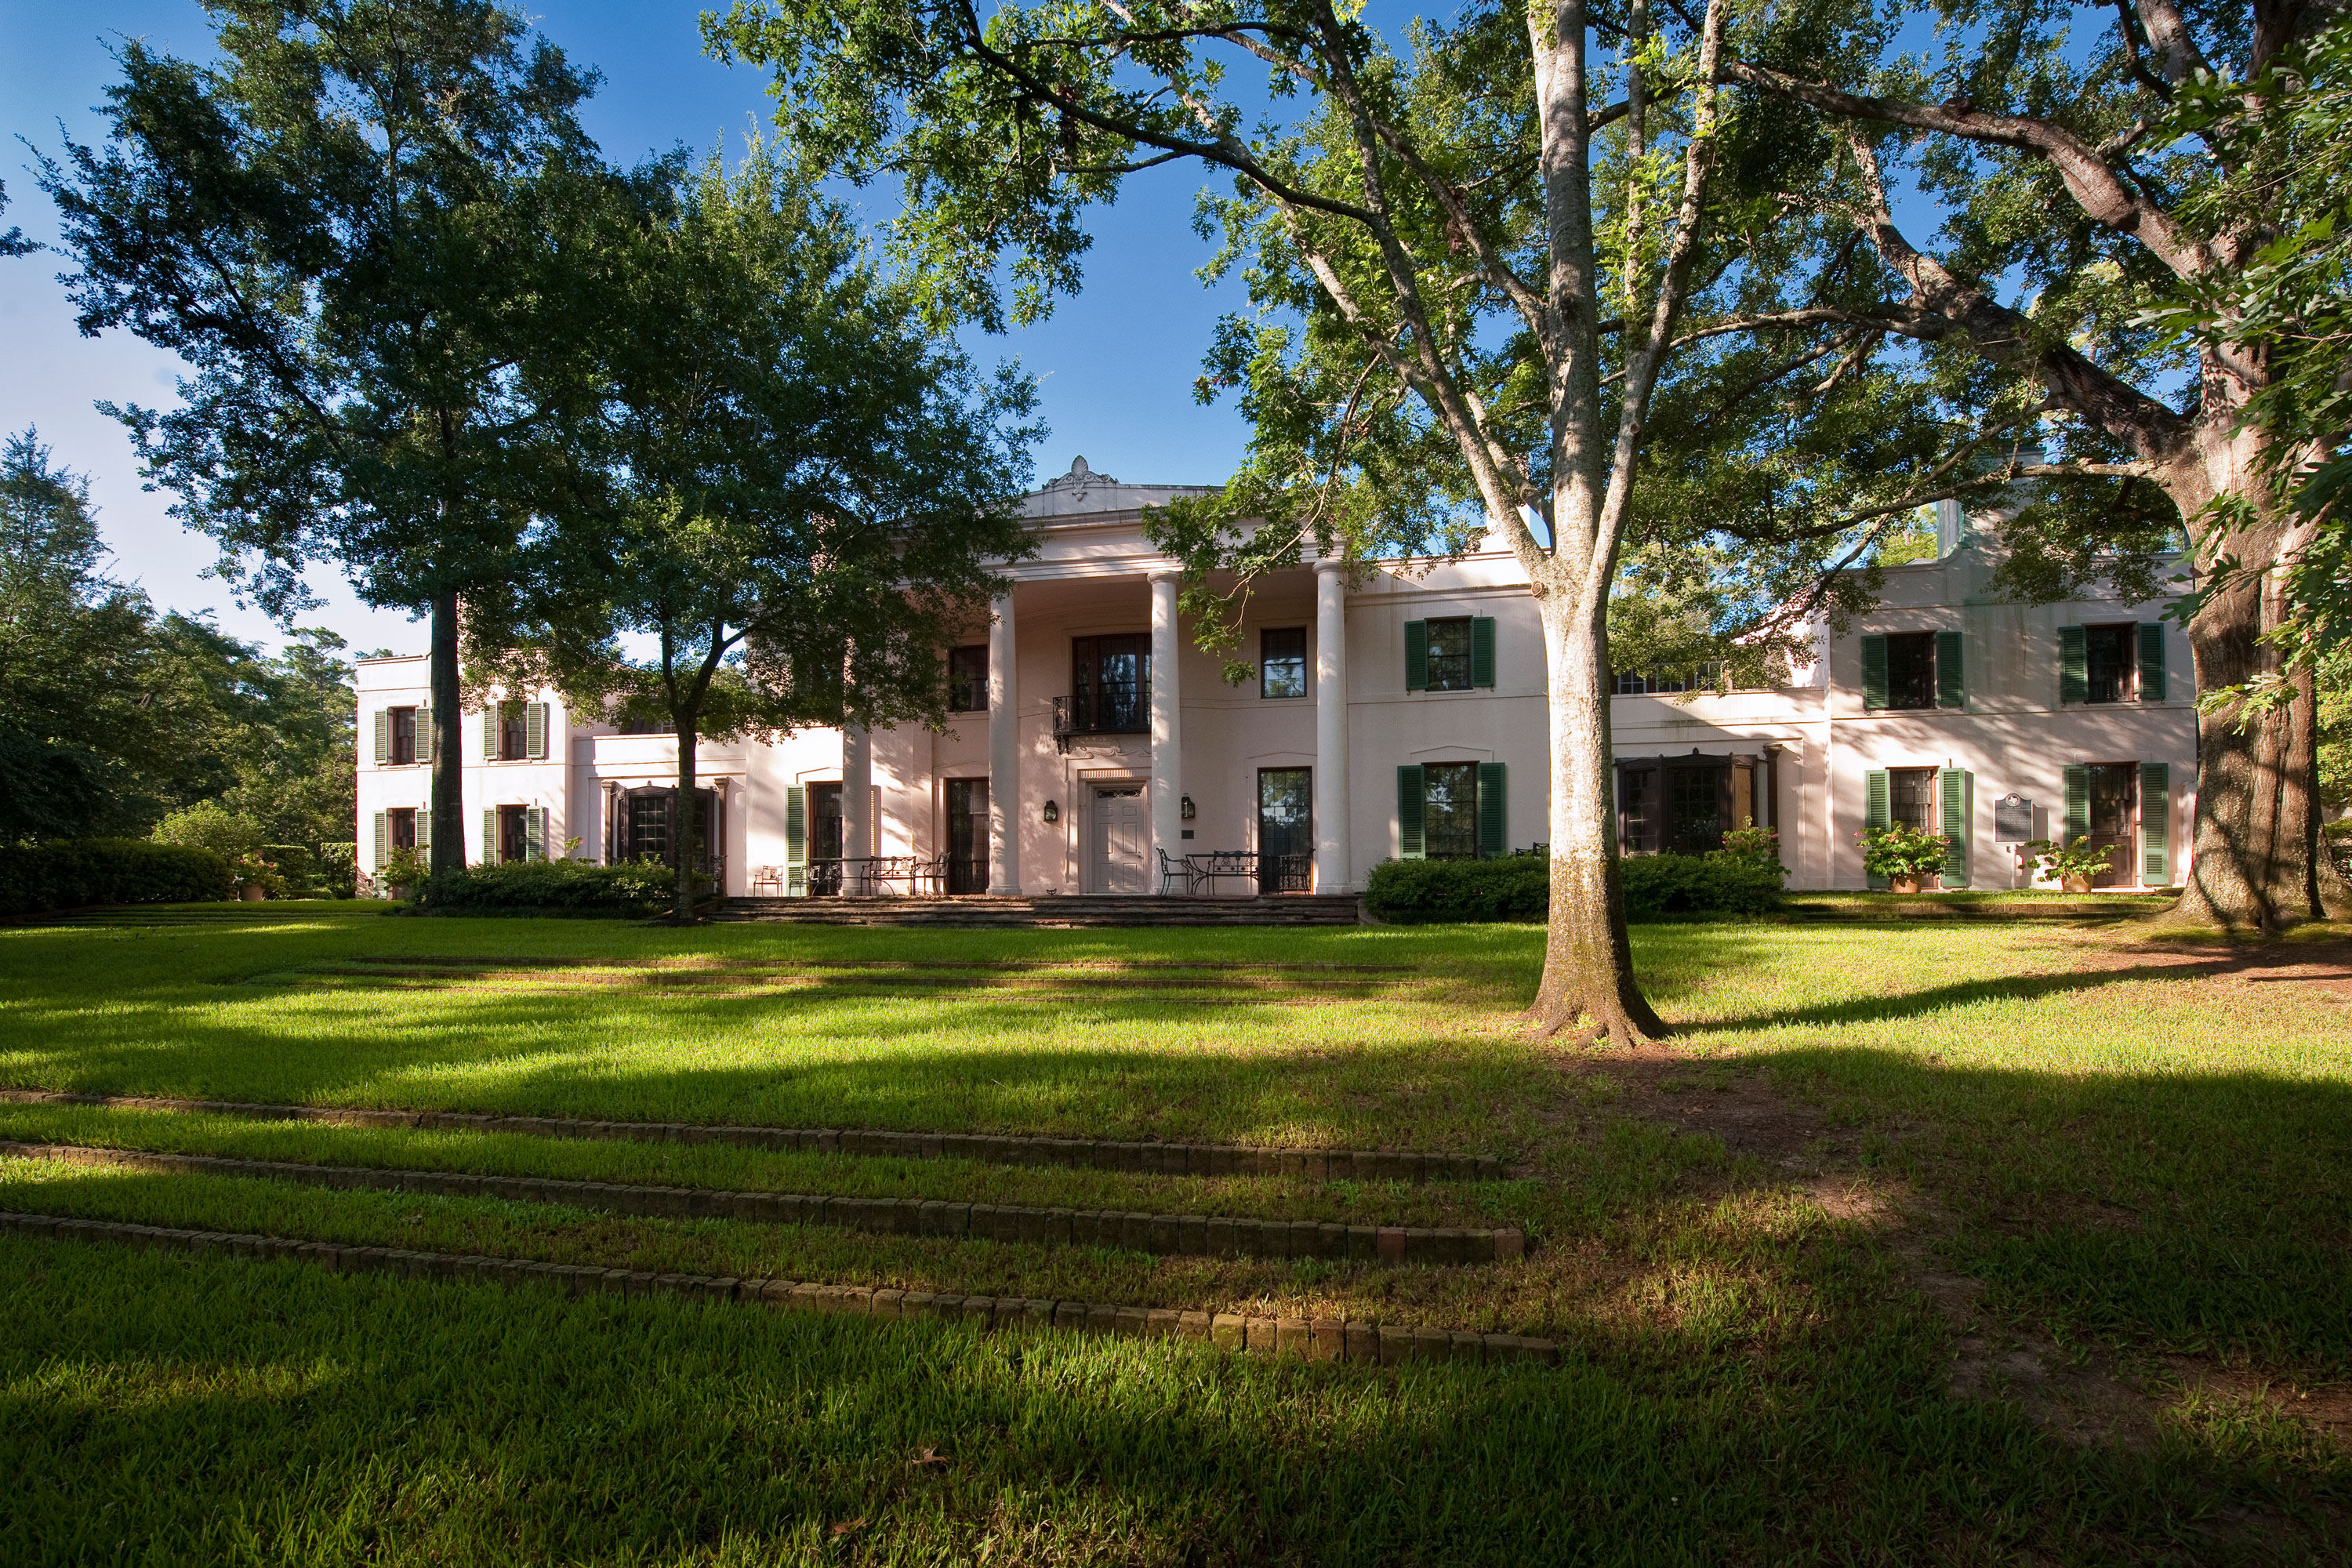 Bayou Bend Collection And Gardens Now Part Of The Museum Of Fine Arts Houston Represents The